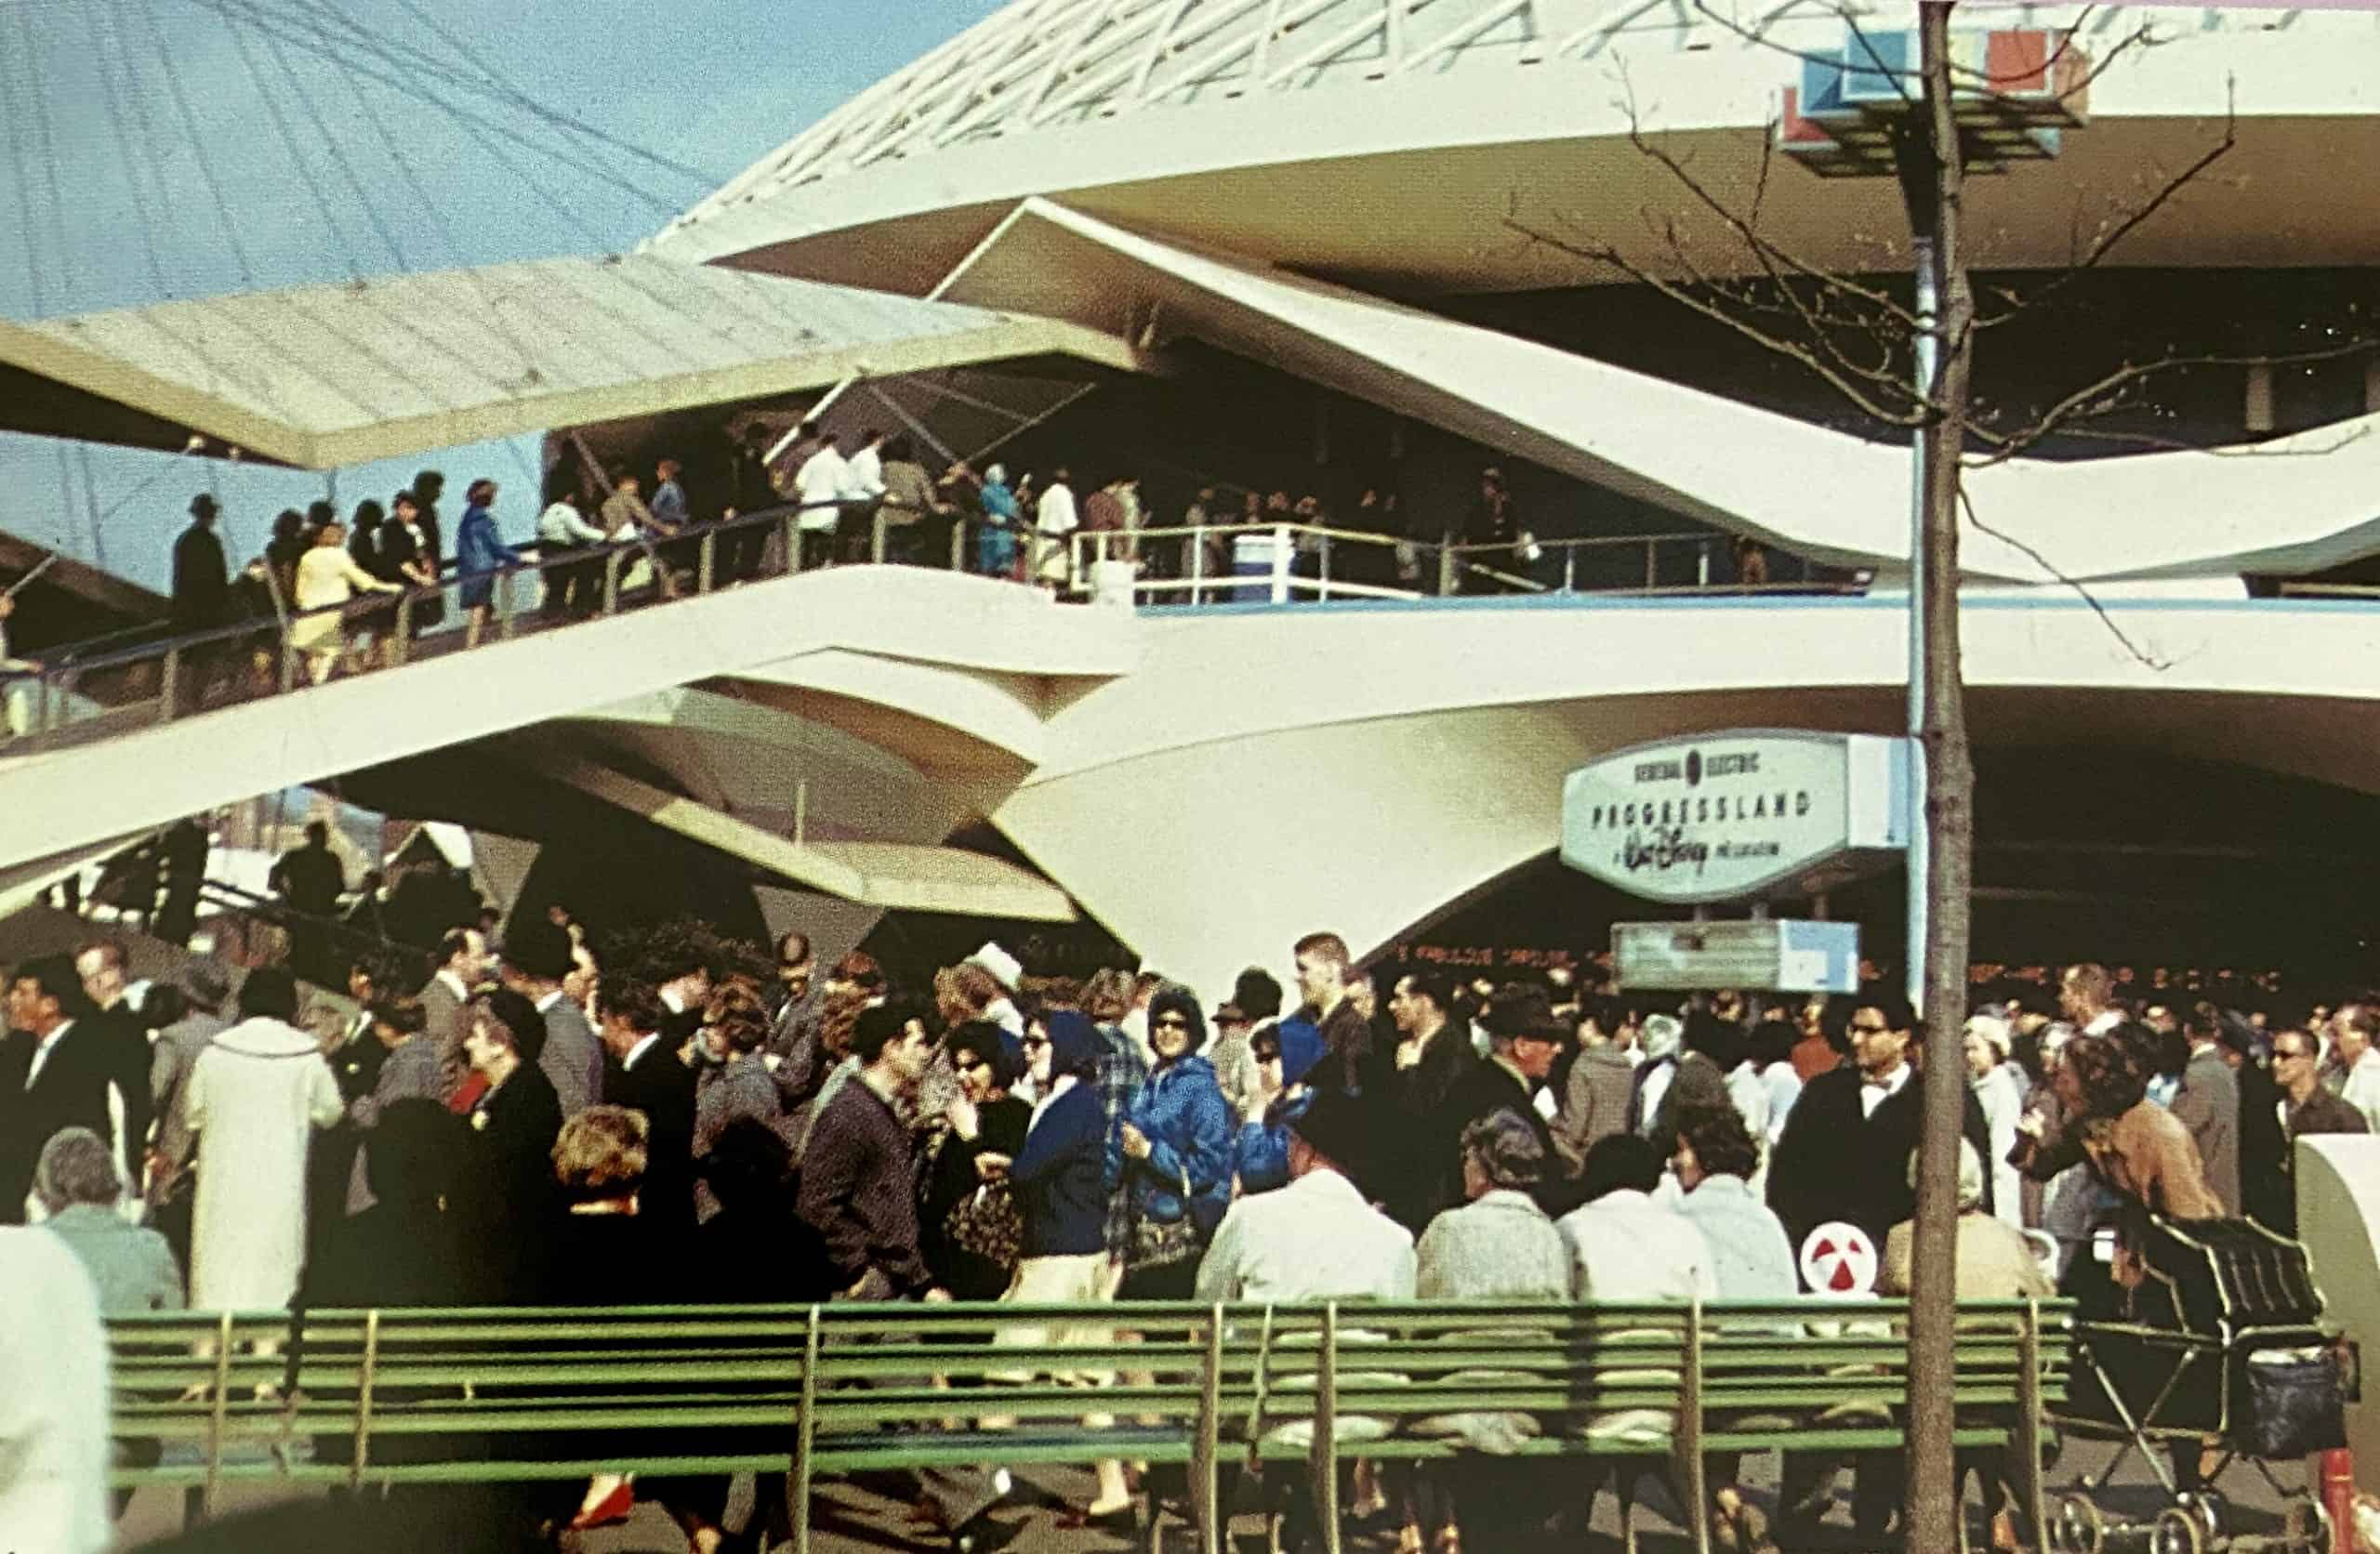 Progressland pavilion at the 1964 World's Fair - a Walt Disney Production - the original Carousel of Progress